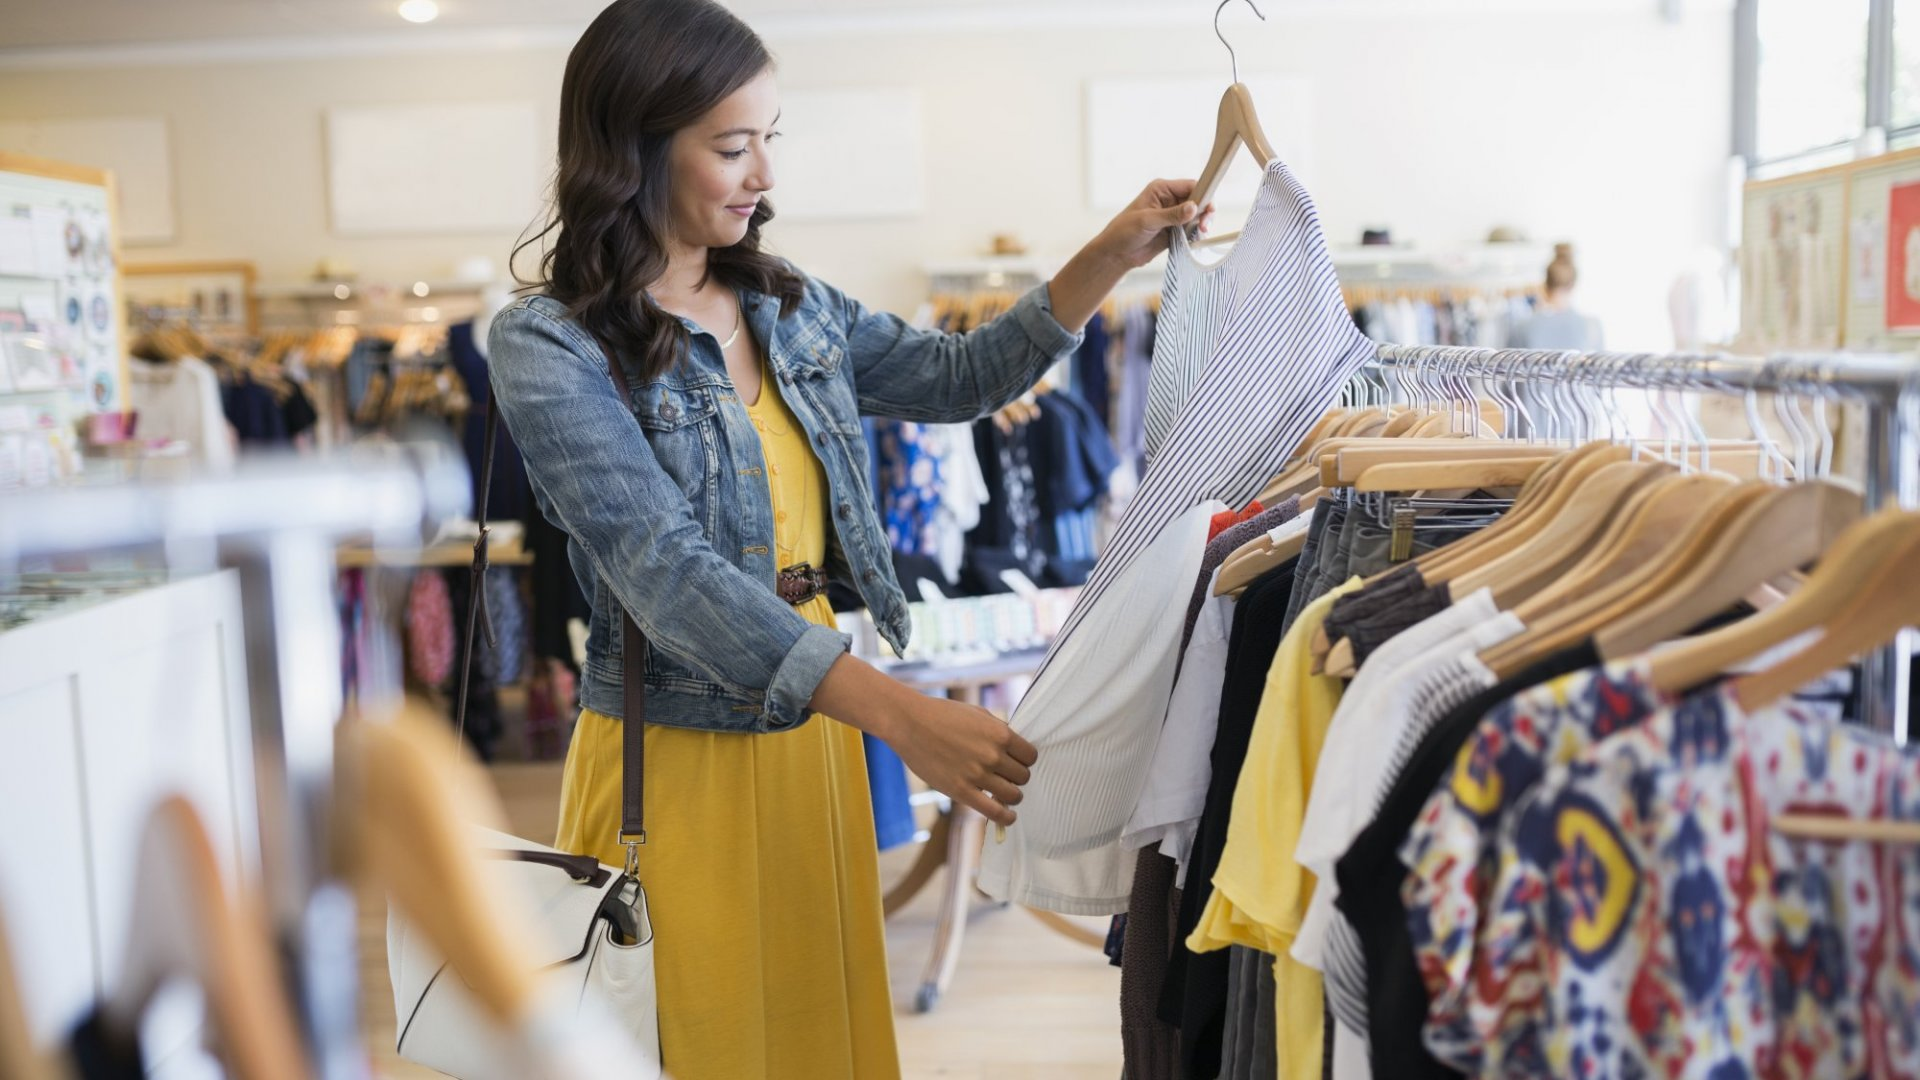 """Paradoxically, as """"tech-centric"""" as many connected consumers might be, this isn't stopping them from driving a renaissance of offline retail with their desire and demand for hands-on product experience prior to purchasing."""